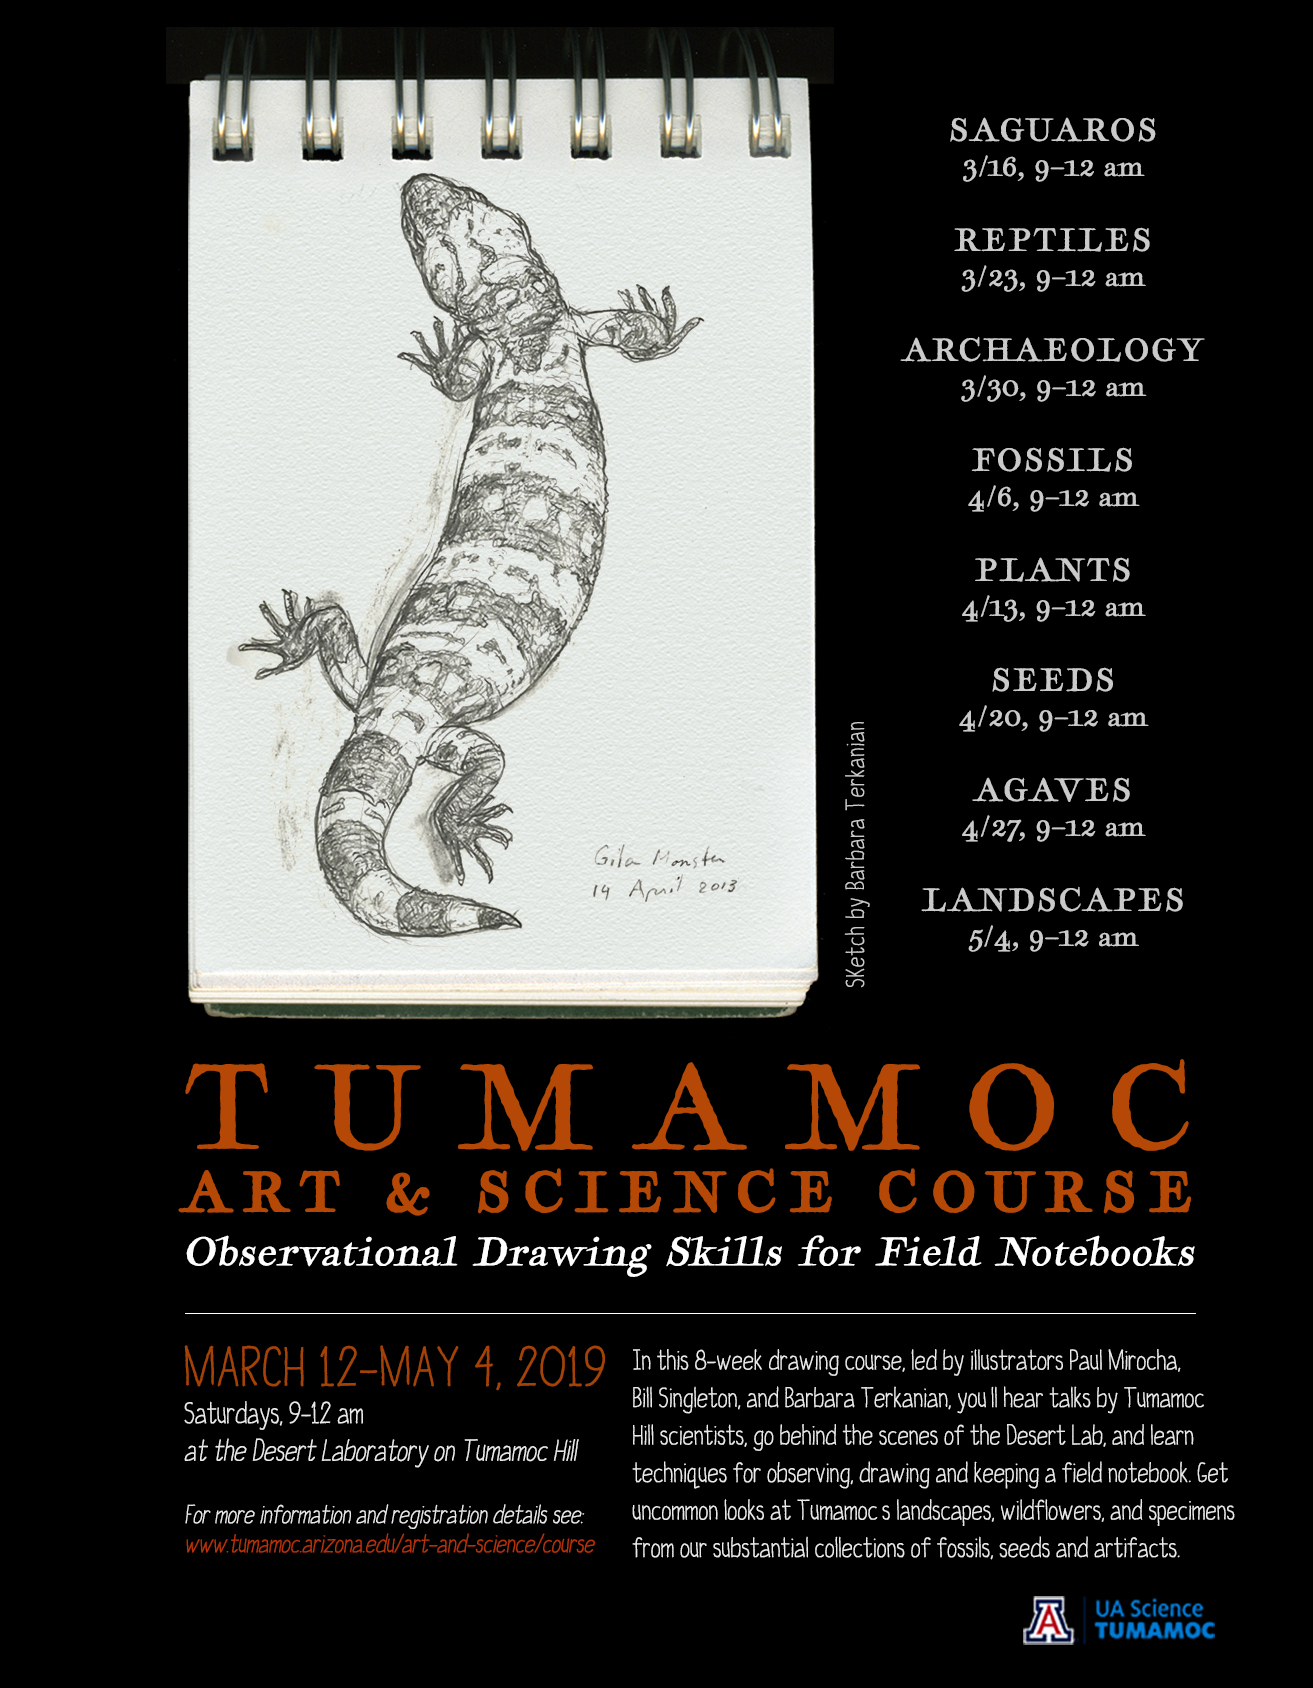 Tumamoc art & science course